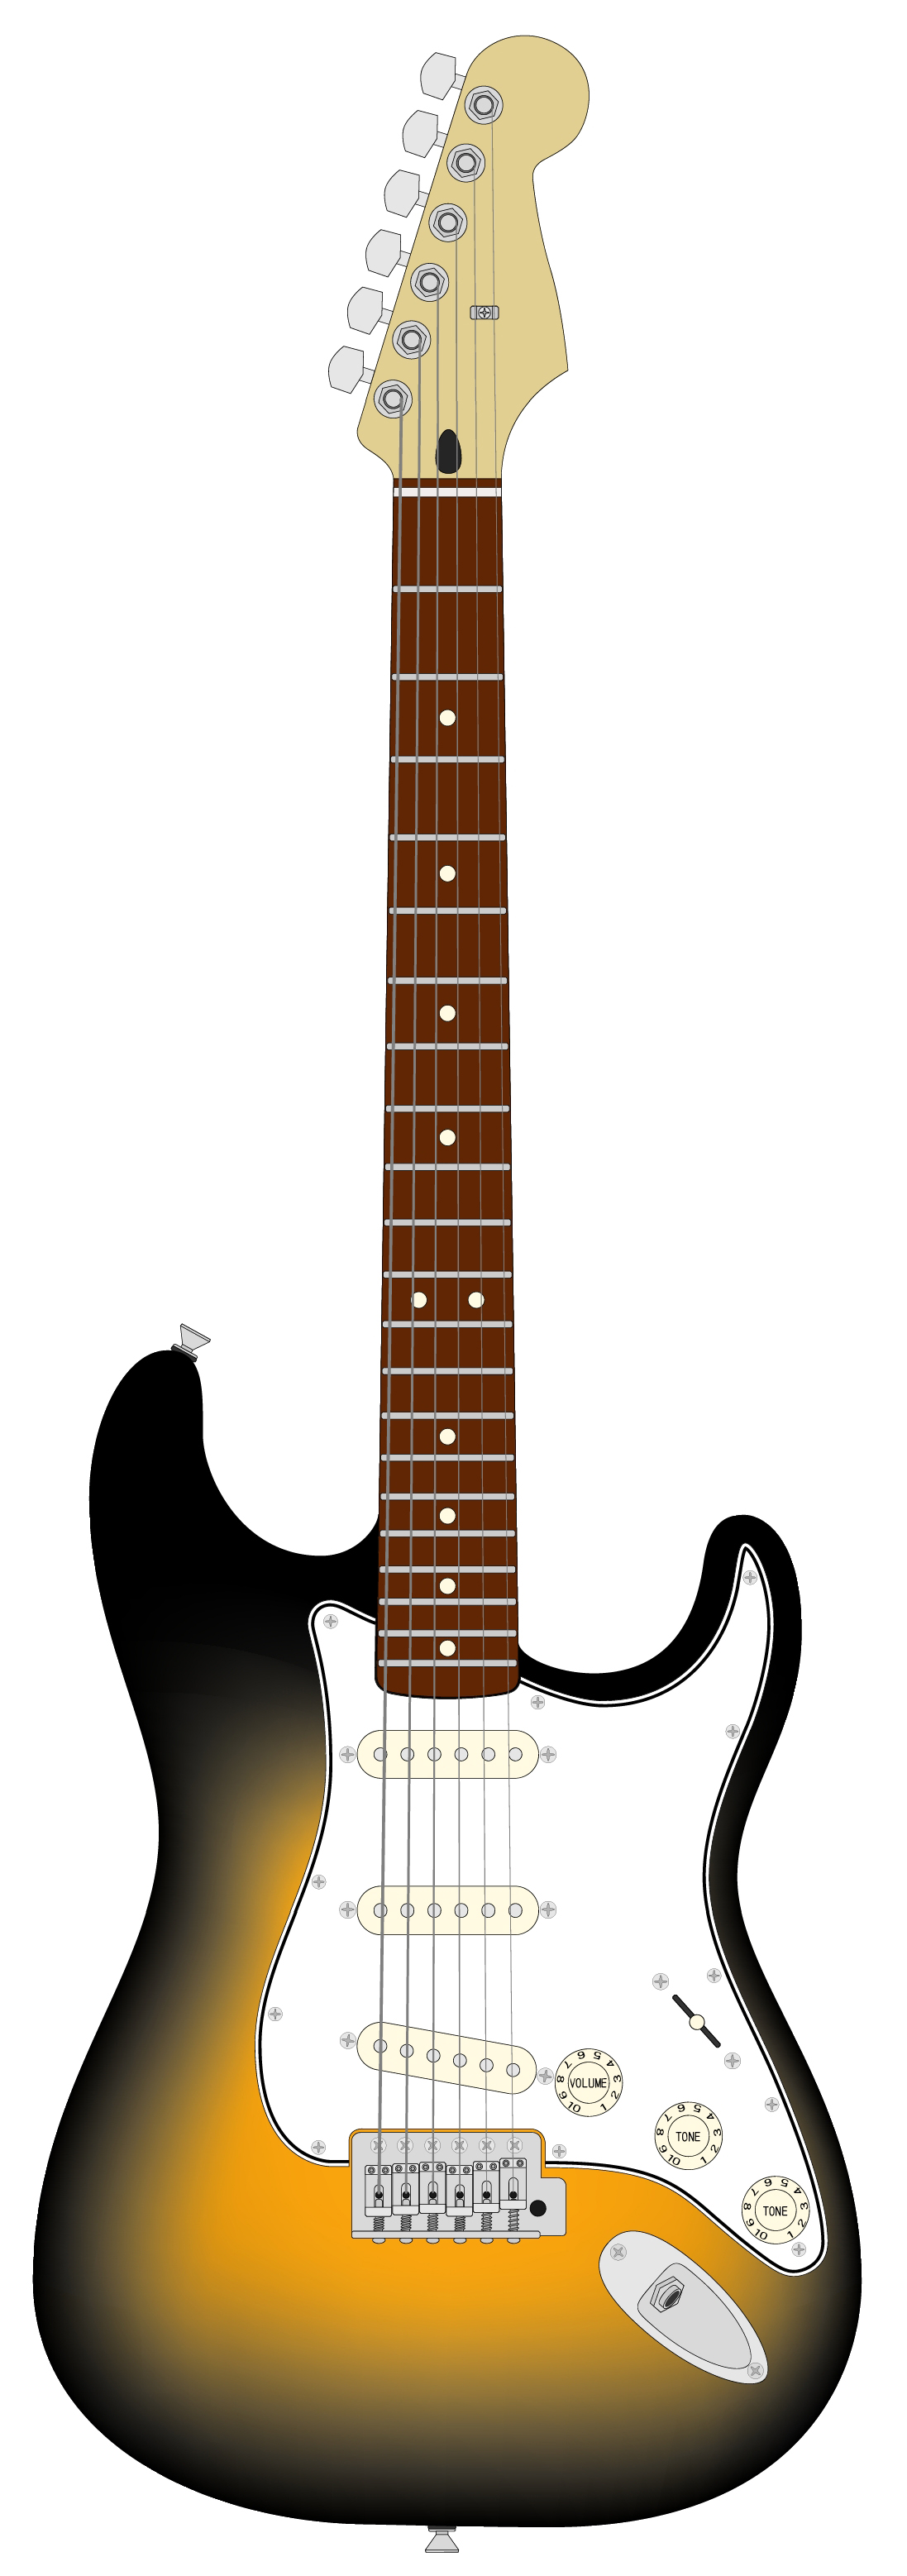 electric%20guitar%20clipart%20black%20and%20white